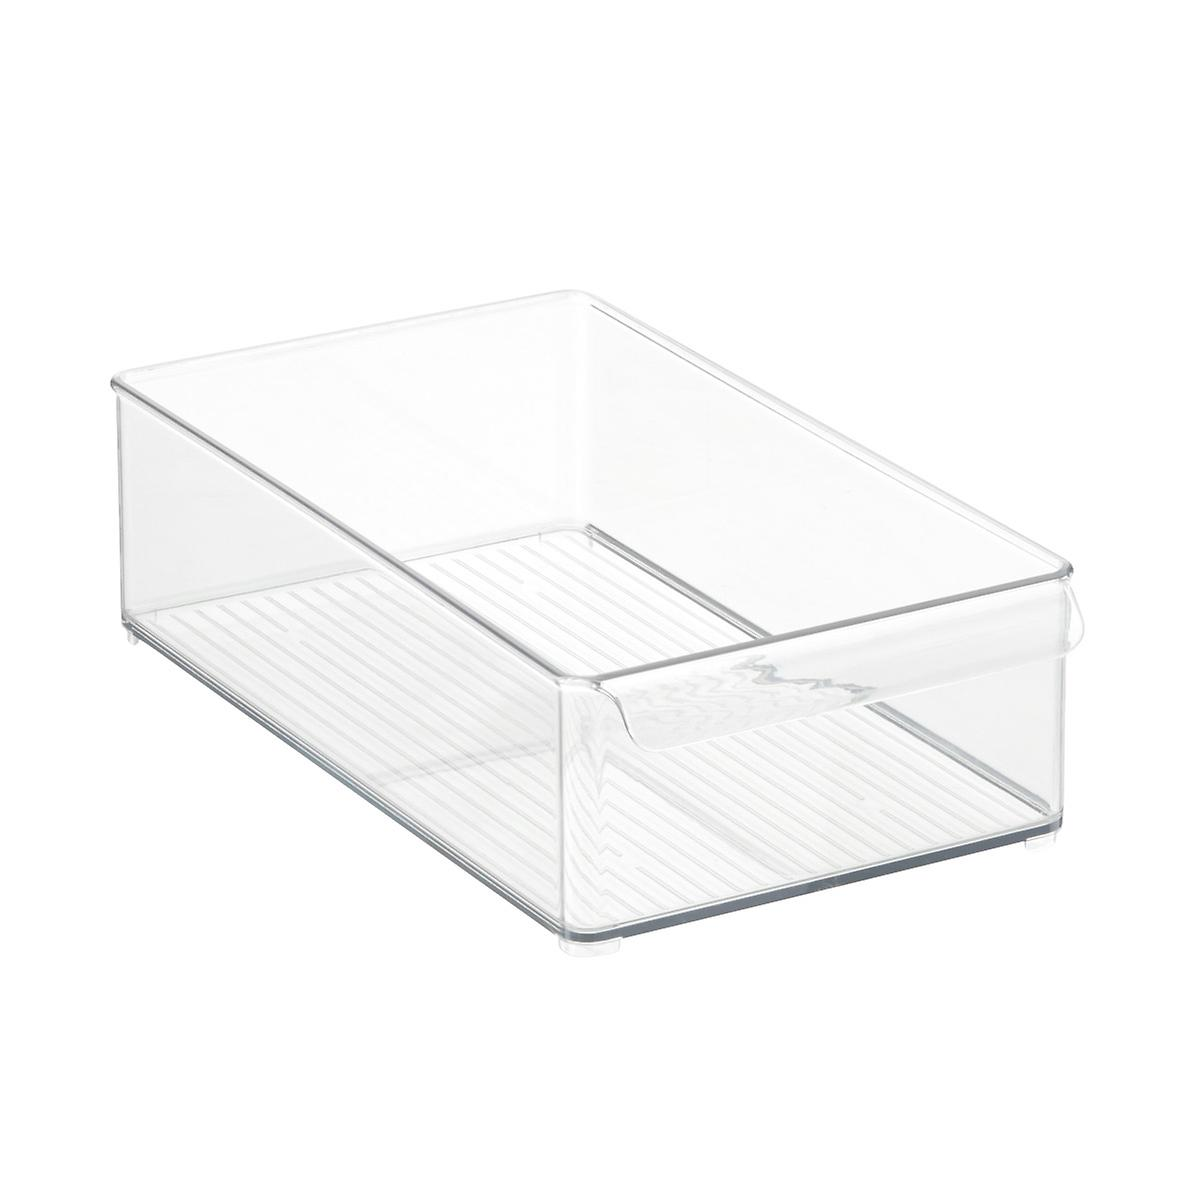 Interdesign Deep Fridge Binz The Container Store